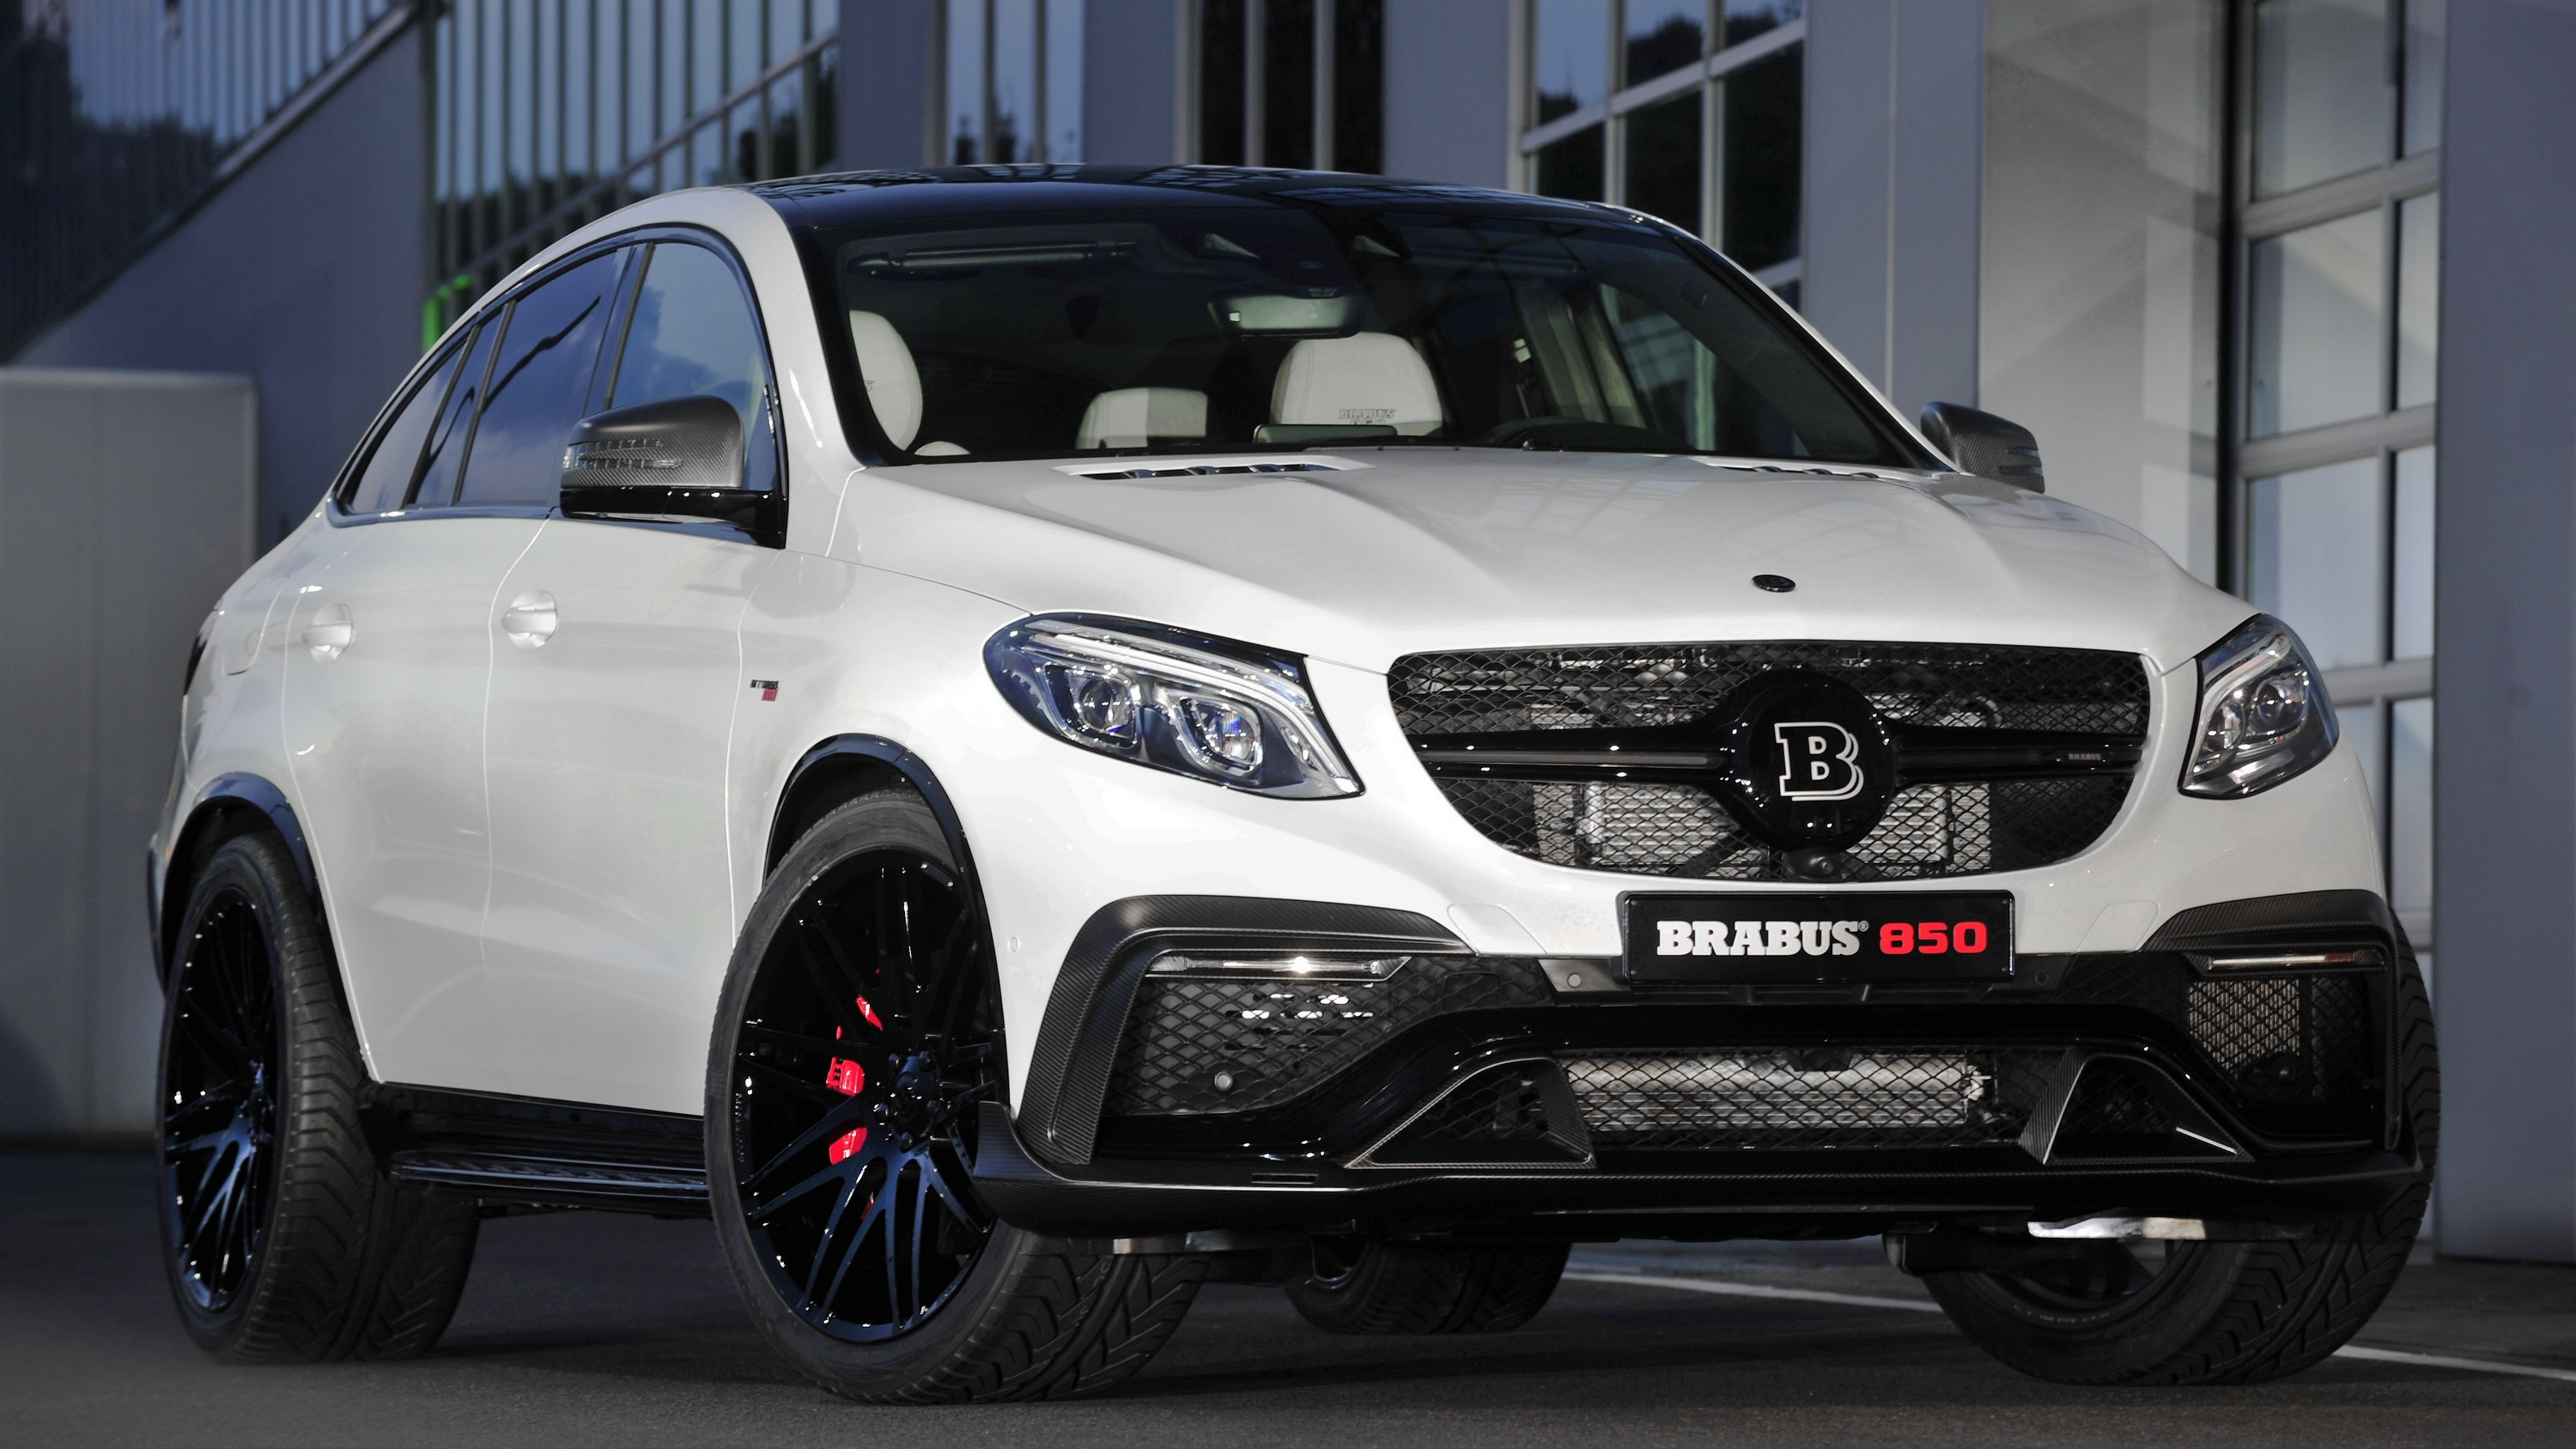 class lease widescreen gla benz wallpaper exotic car pictures mercedes of